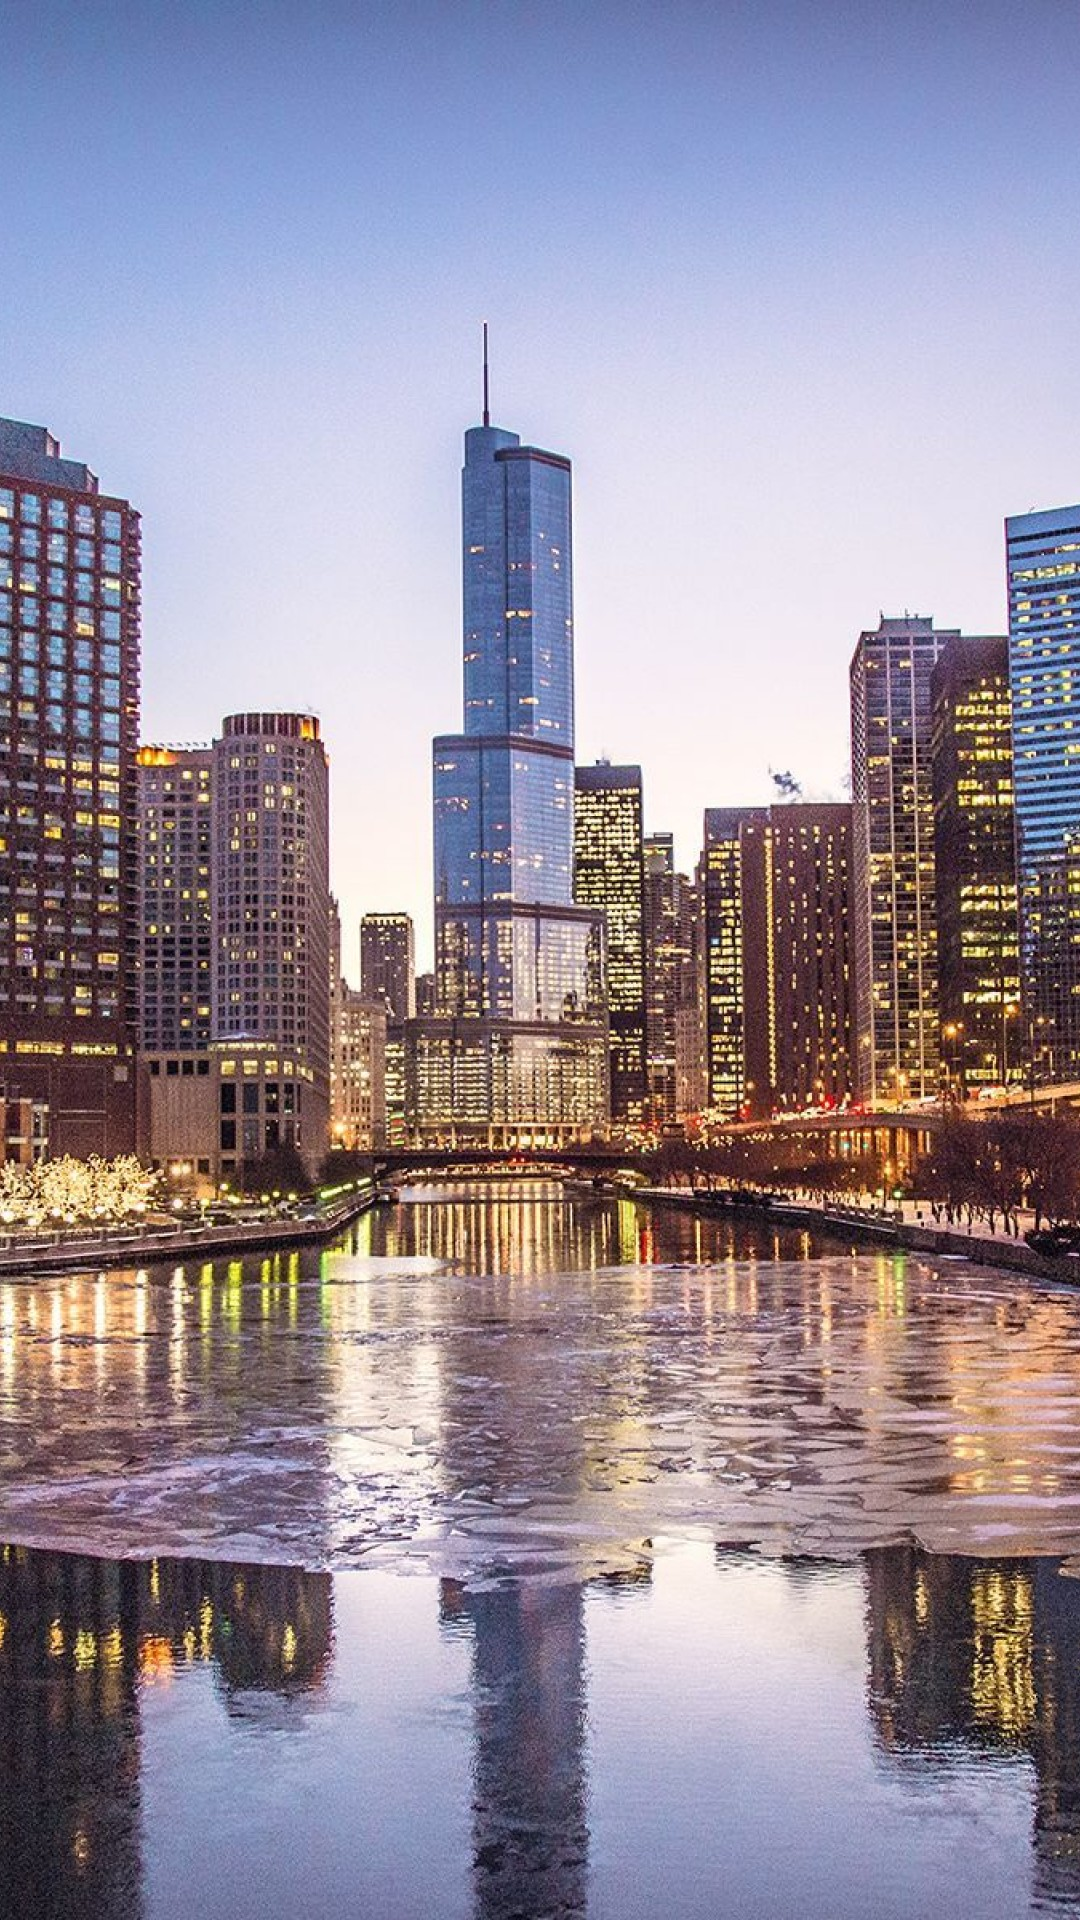 Chicago City Wallpaper For Desktop And Mobiles Iphone 6 6s